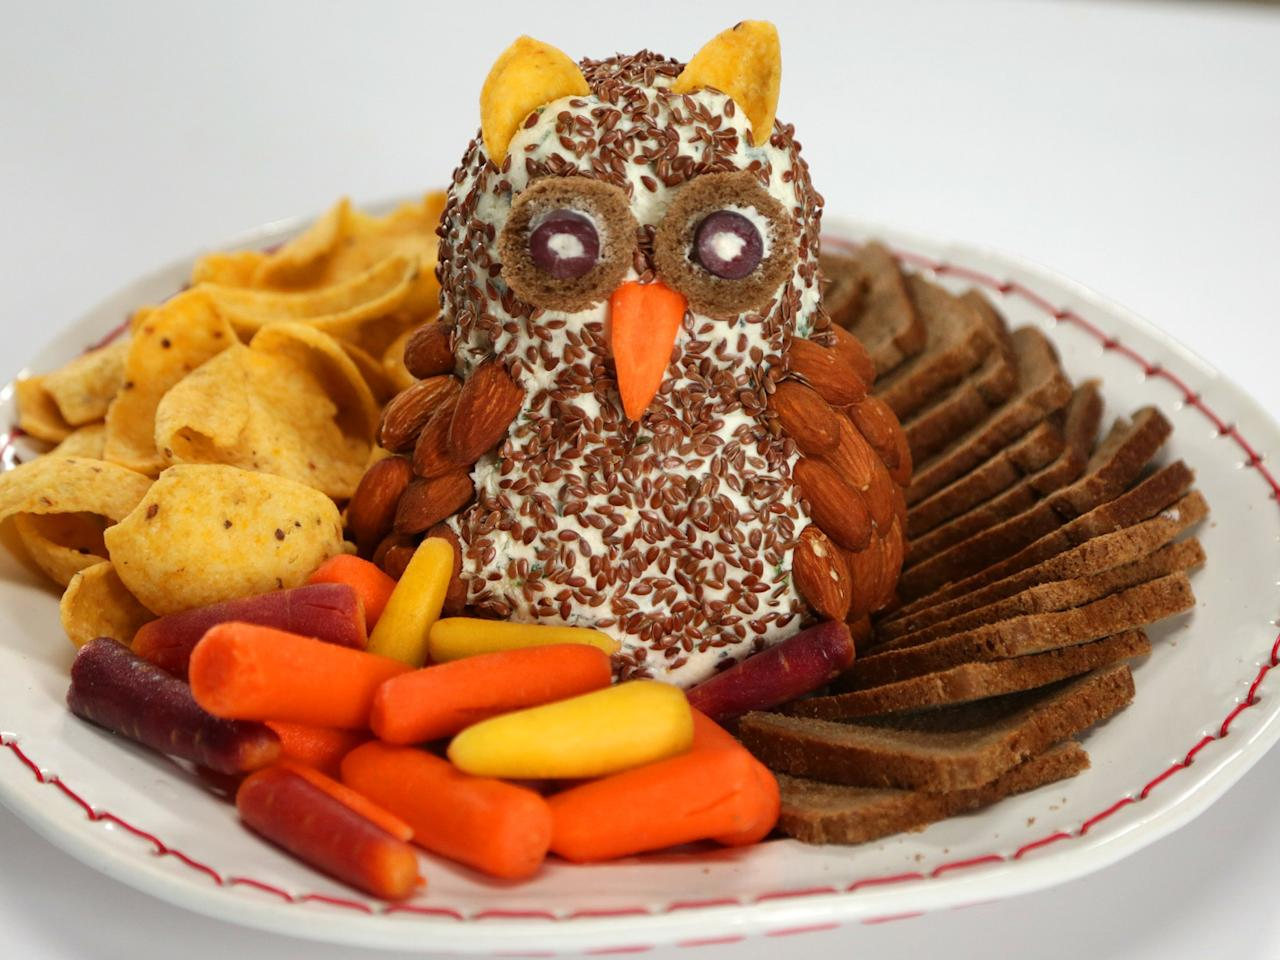 """<p>For a holiday appetizer that's as adorable as it is delicious, you can't go wrong with this owl cheese ball. </p> <p><a href=""""https://www.myrecipes.com/recipe/christmas-owl-cheese-ball"""">Christmas Owl Cheese Ball Recipe</a></p>"""